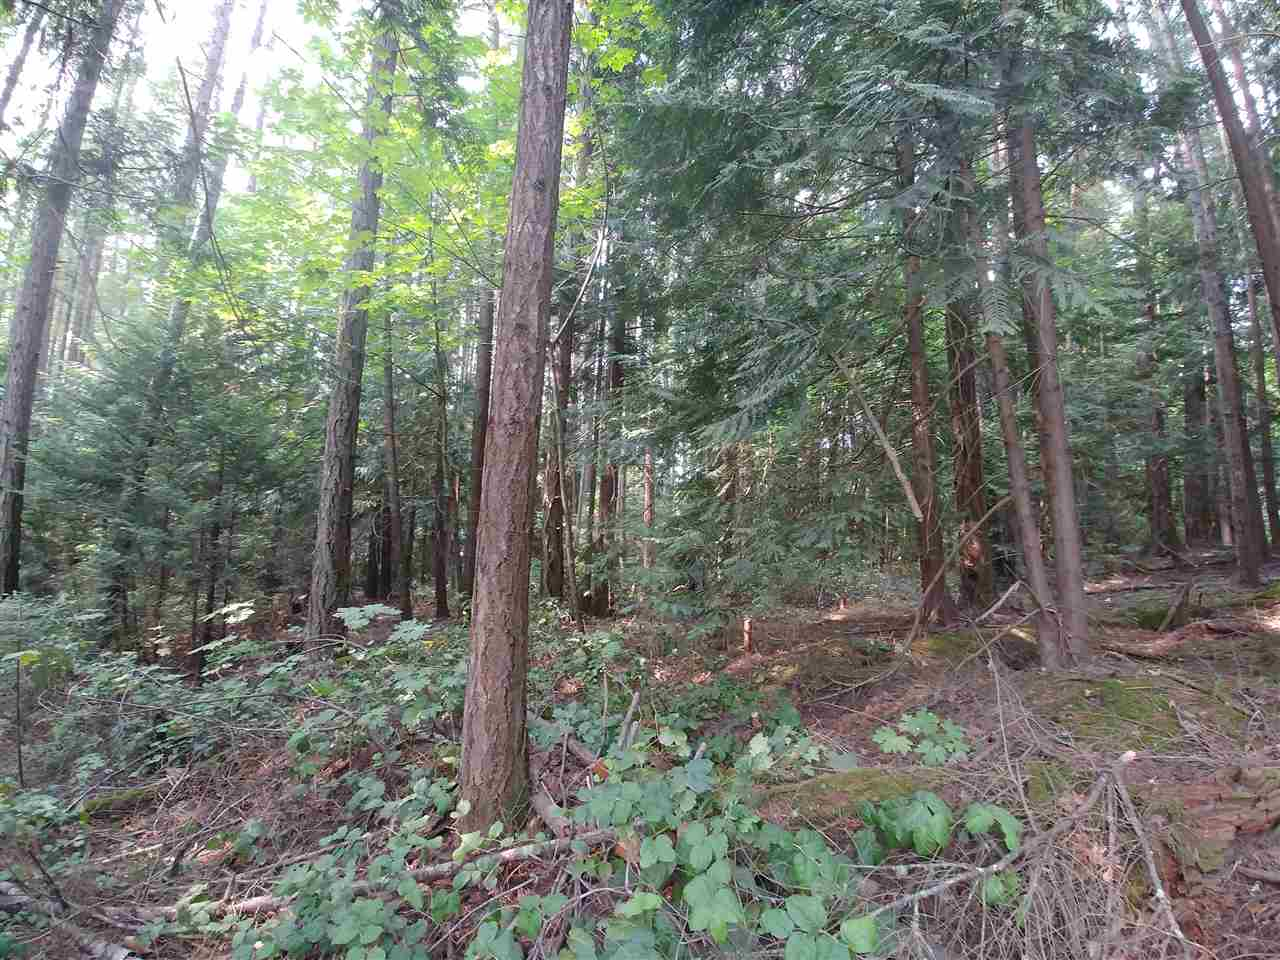 Come live the dream in the beautiful Southern Gulf Islands! Quiet .61 acre treed lot on the corner of Razor Point Rd and Lupin Rd on beautiful Pender Island. Close to the Driftwood Center for island retail and restaurant amenities. Pender Island is one of the few Gulf Islands that has all the services you require on island including medical center, grocery store, retail, library, elementary school, and restaurants. Requires drilled well and septic system.